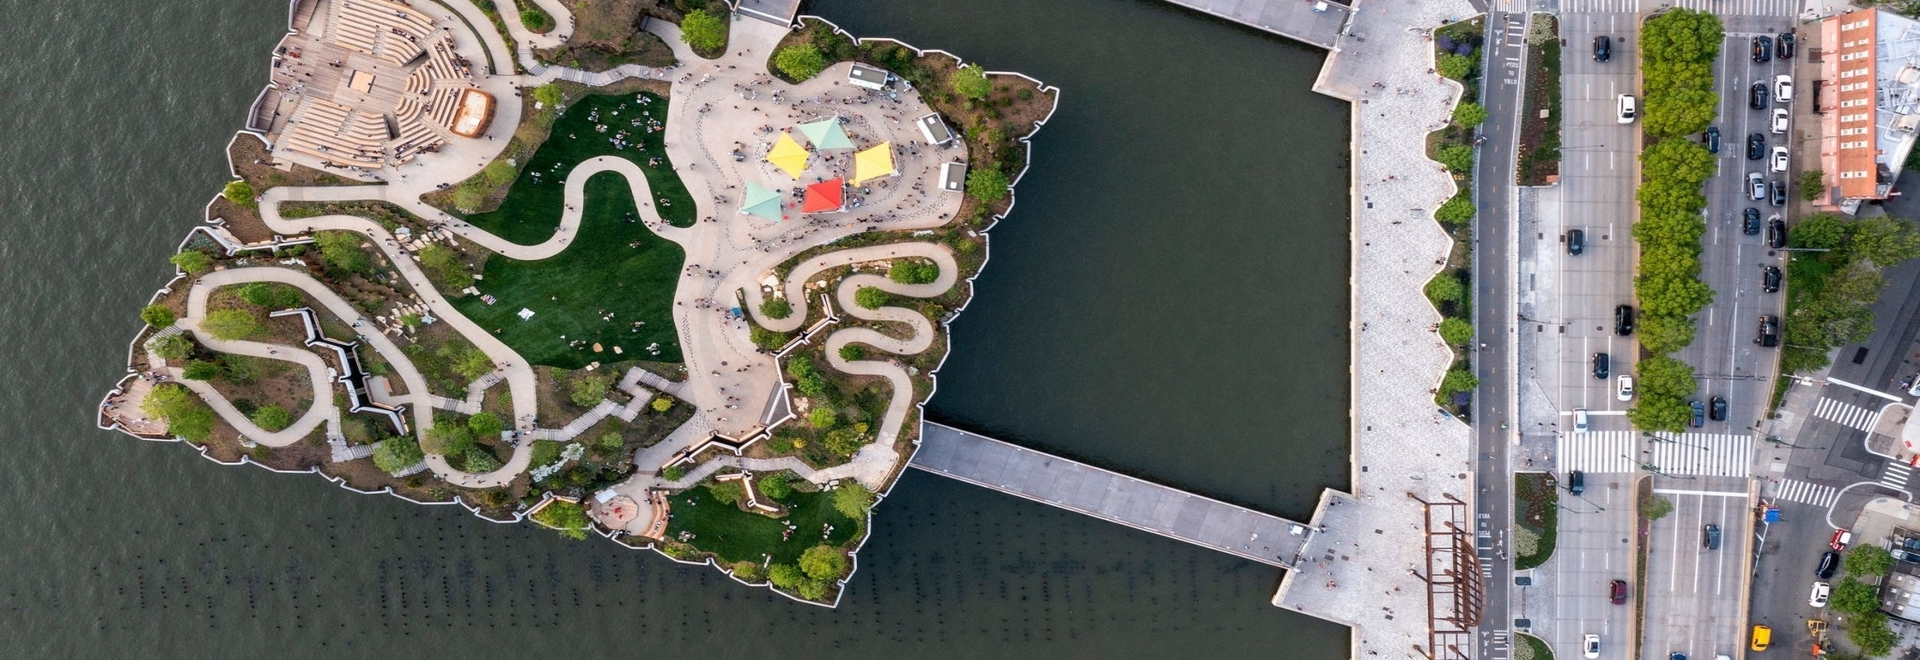 Thomas Heatherwick's Little Island park and outdoor theatre opens on the Hudson